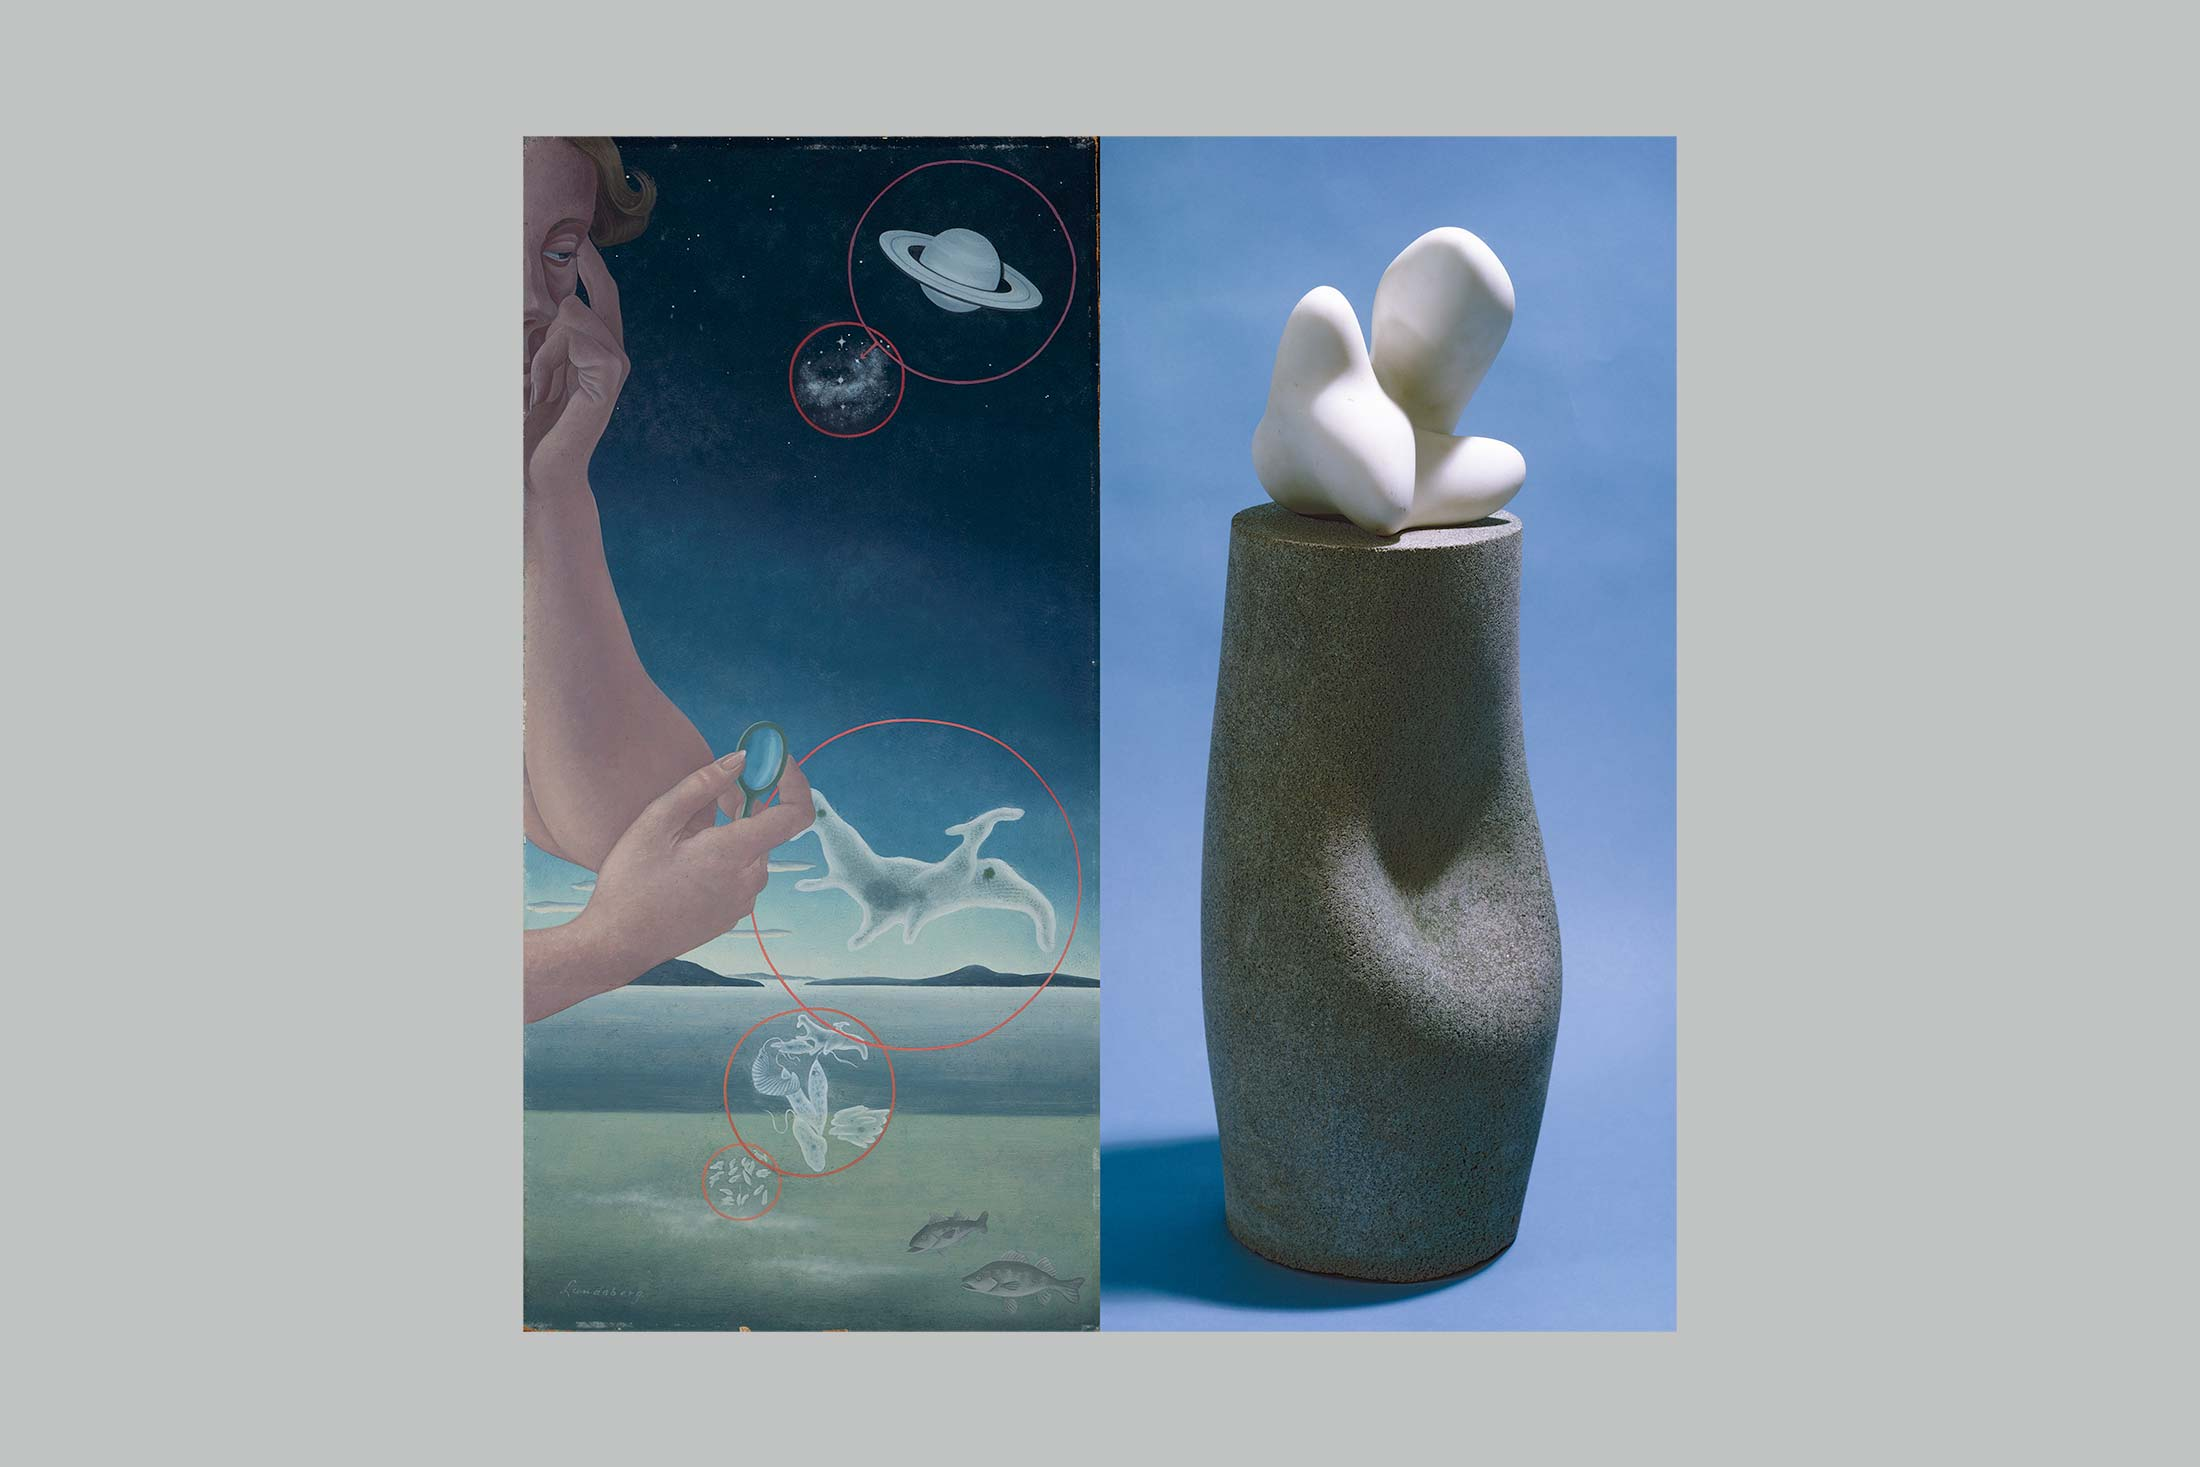 Left: Microcosm and Macrocosm (1937). Helen Lundeberg; Right: Mirr (1936, base 1960), by Jean Arp. Sirató